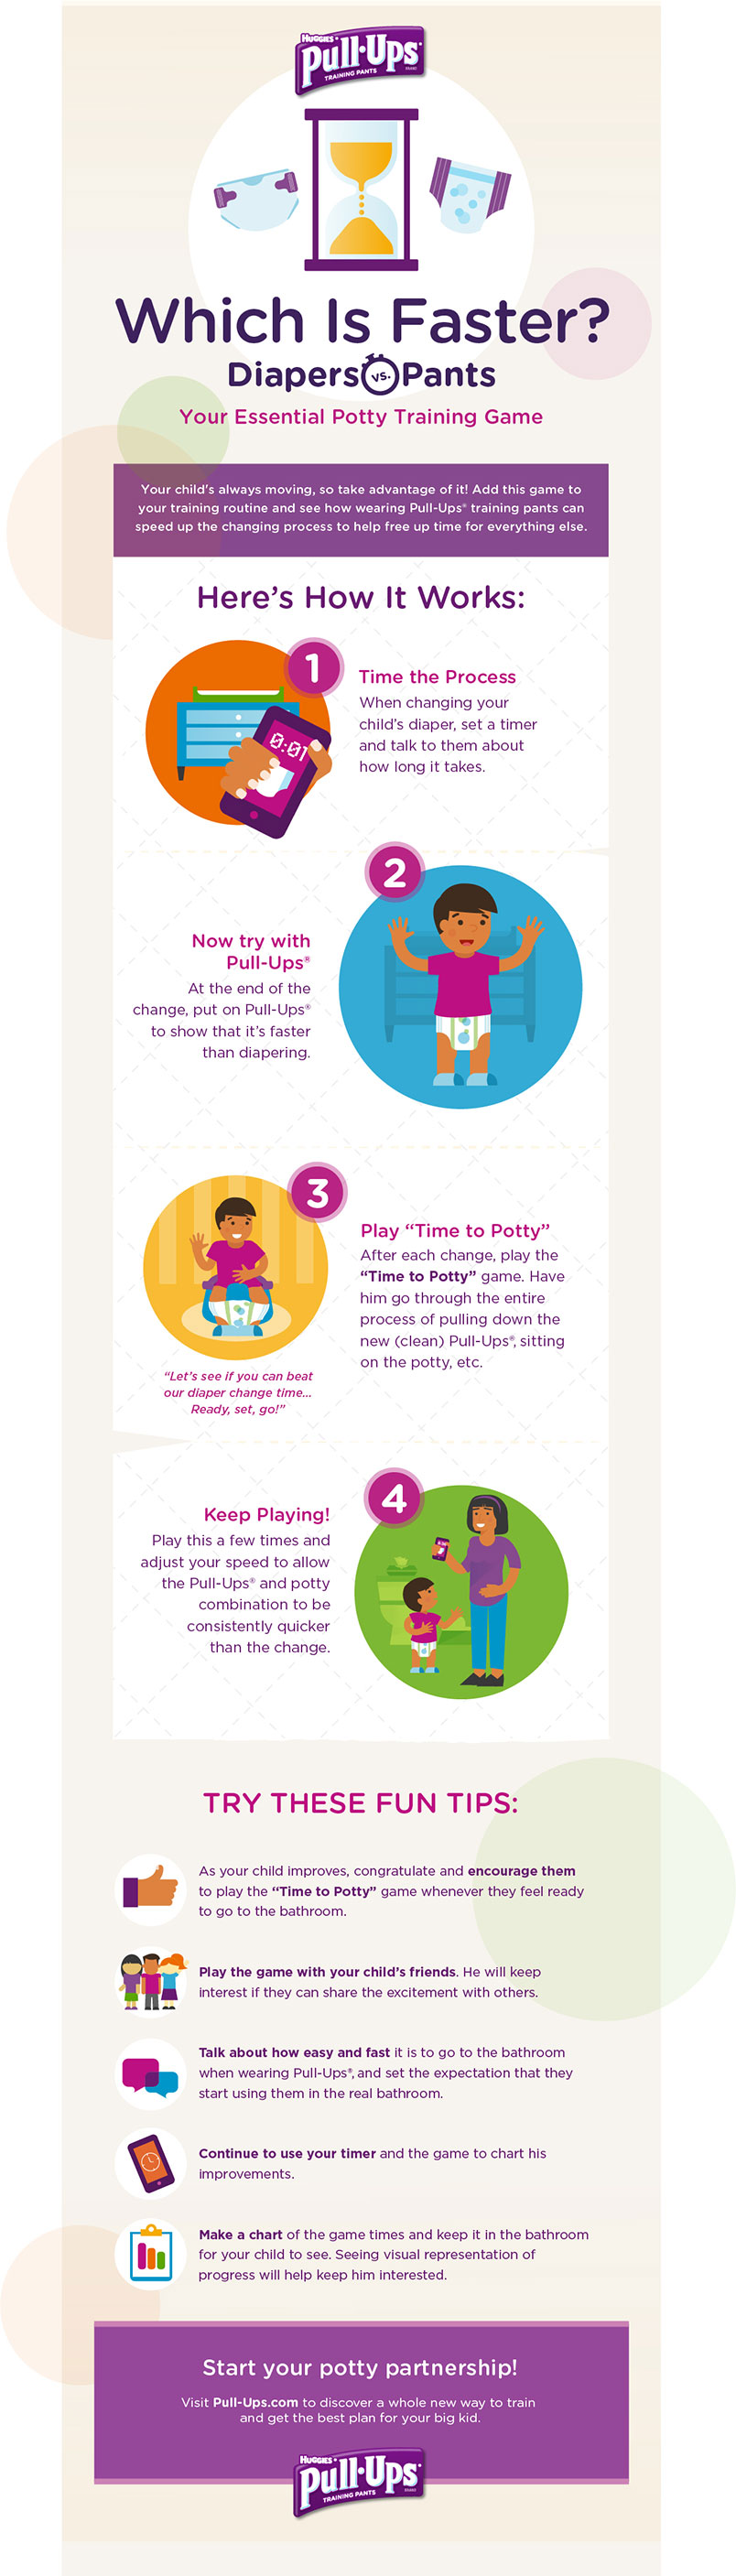 Infographic showing the step-by-step instructions for the Which is Faster Diapers Vs Pants game